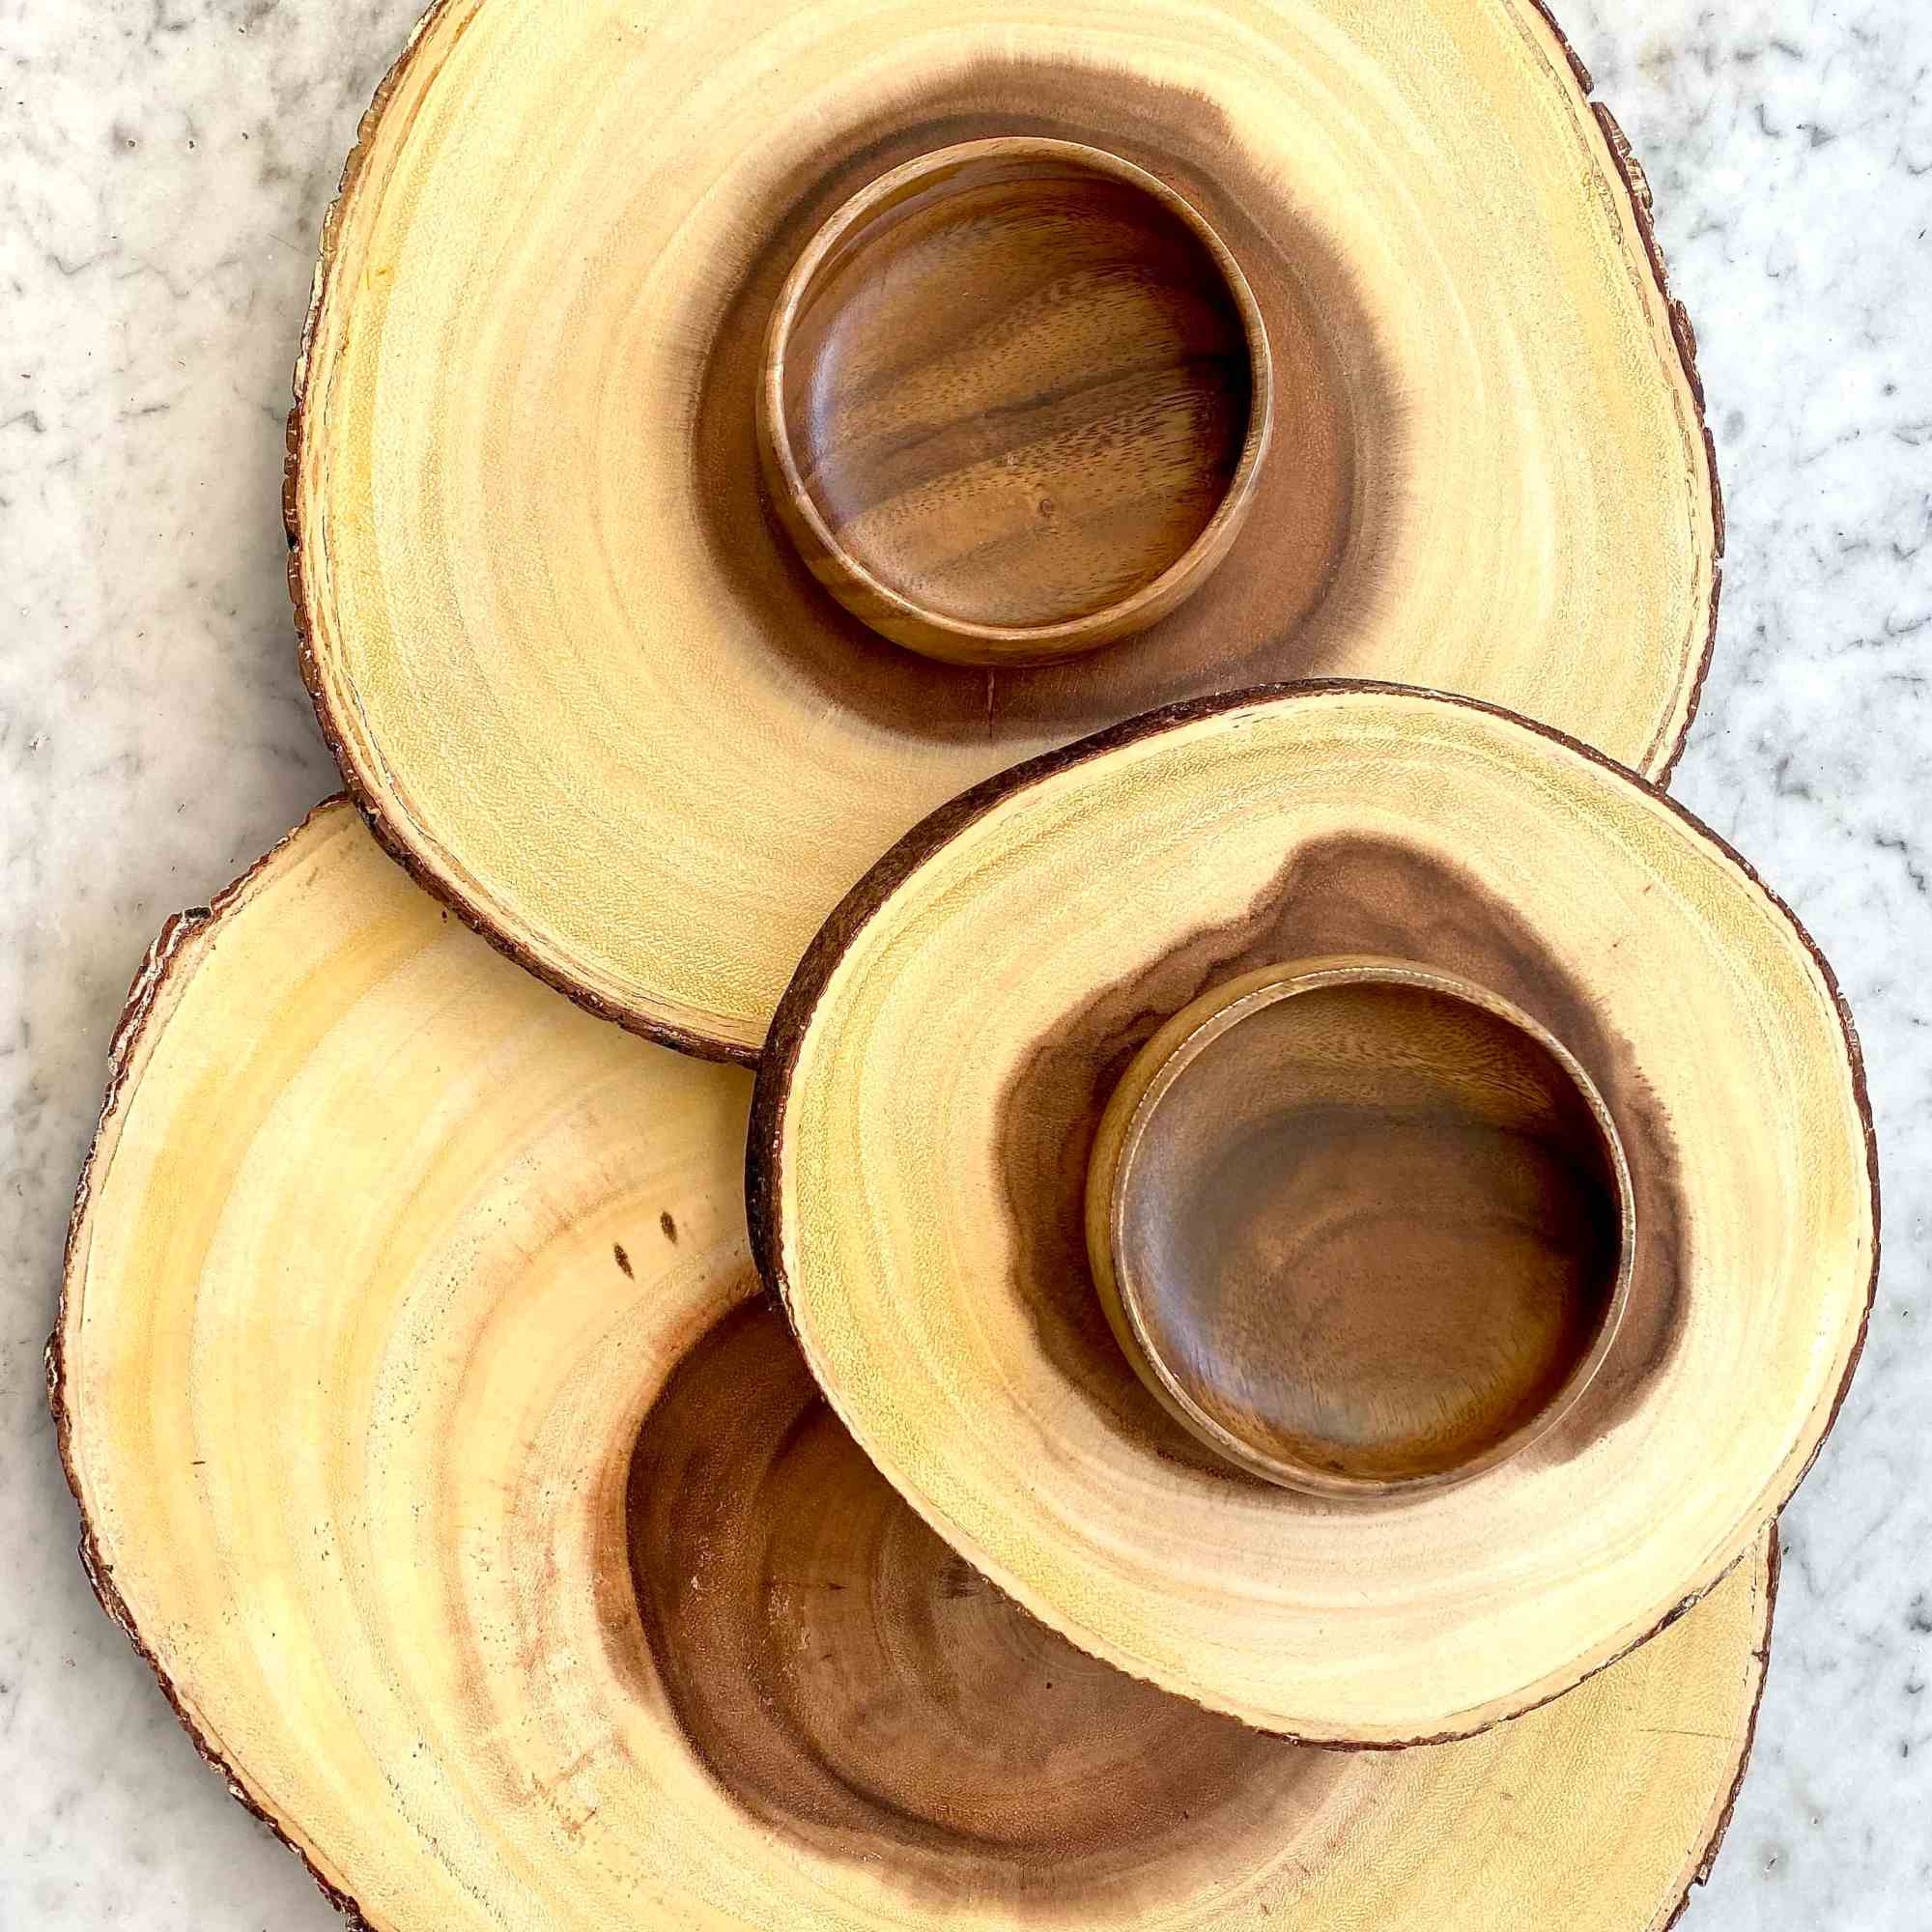 wooden circular cheese board made out of sliced wood